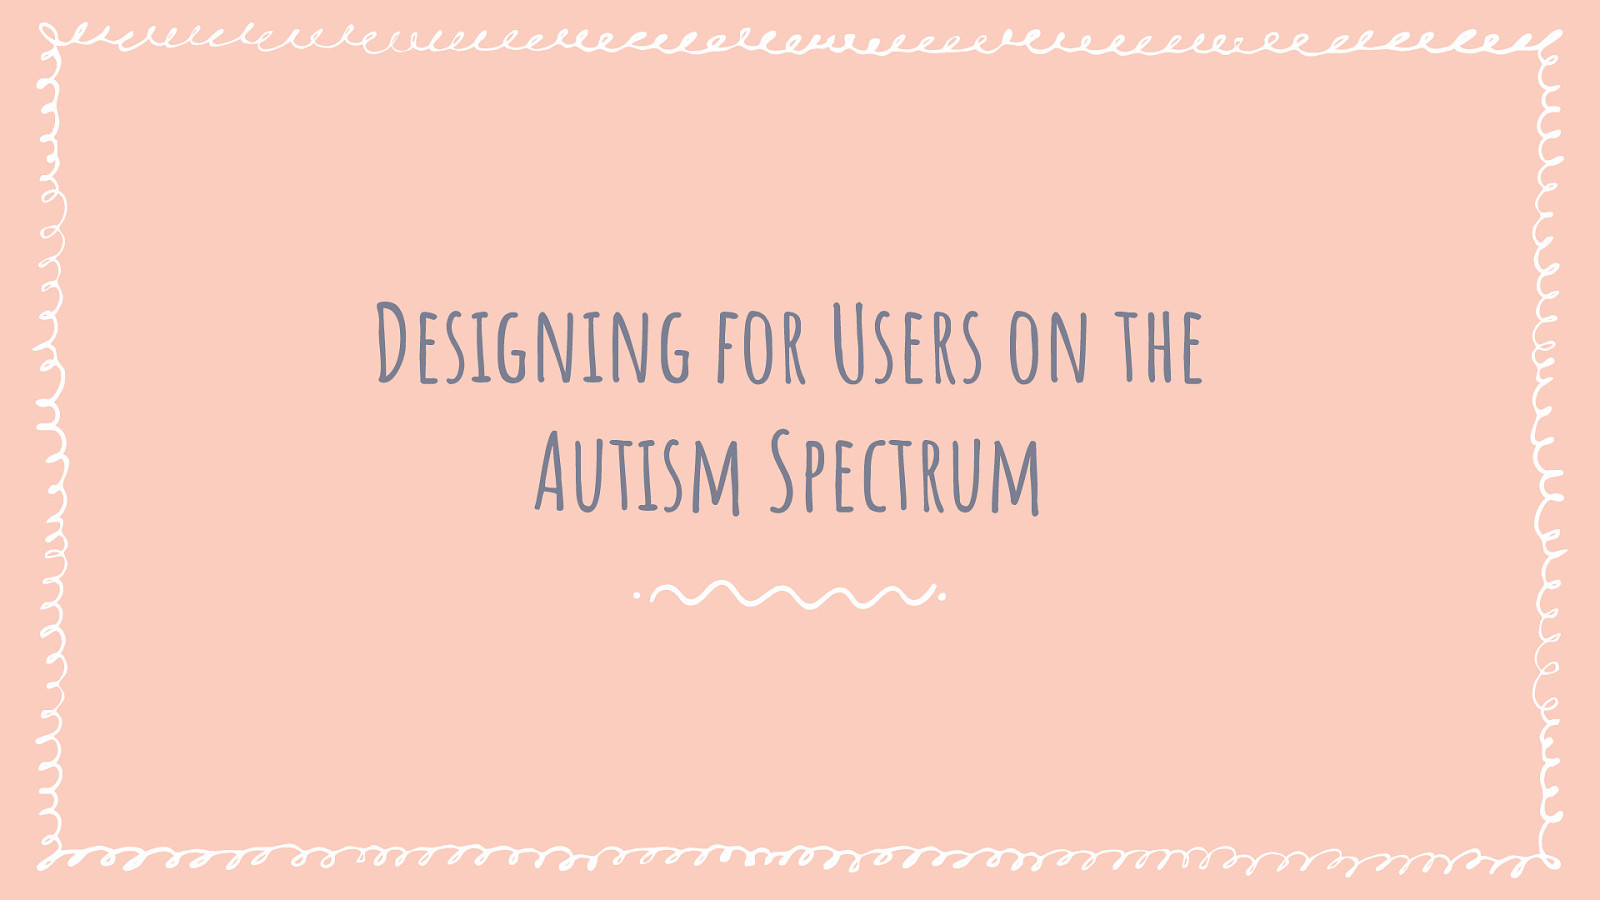 Designing for Users on the Autism Spectrum